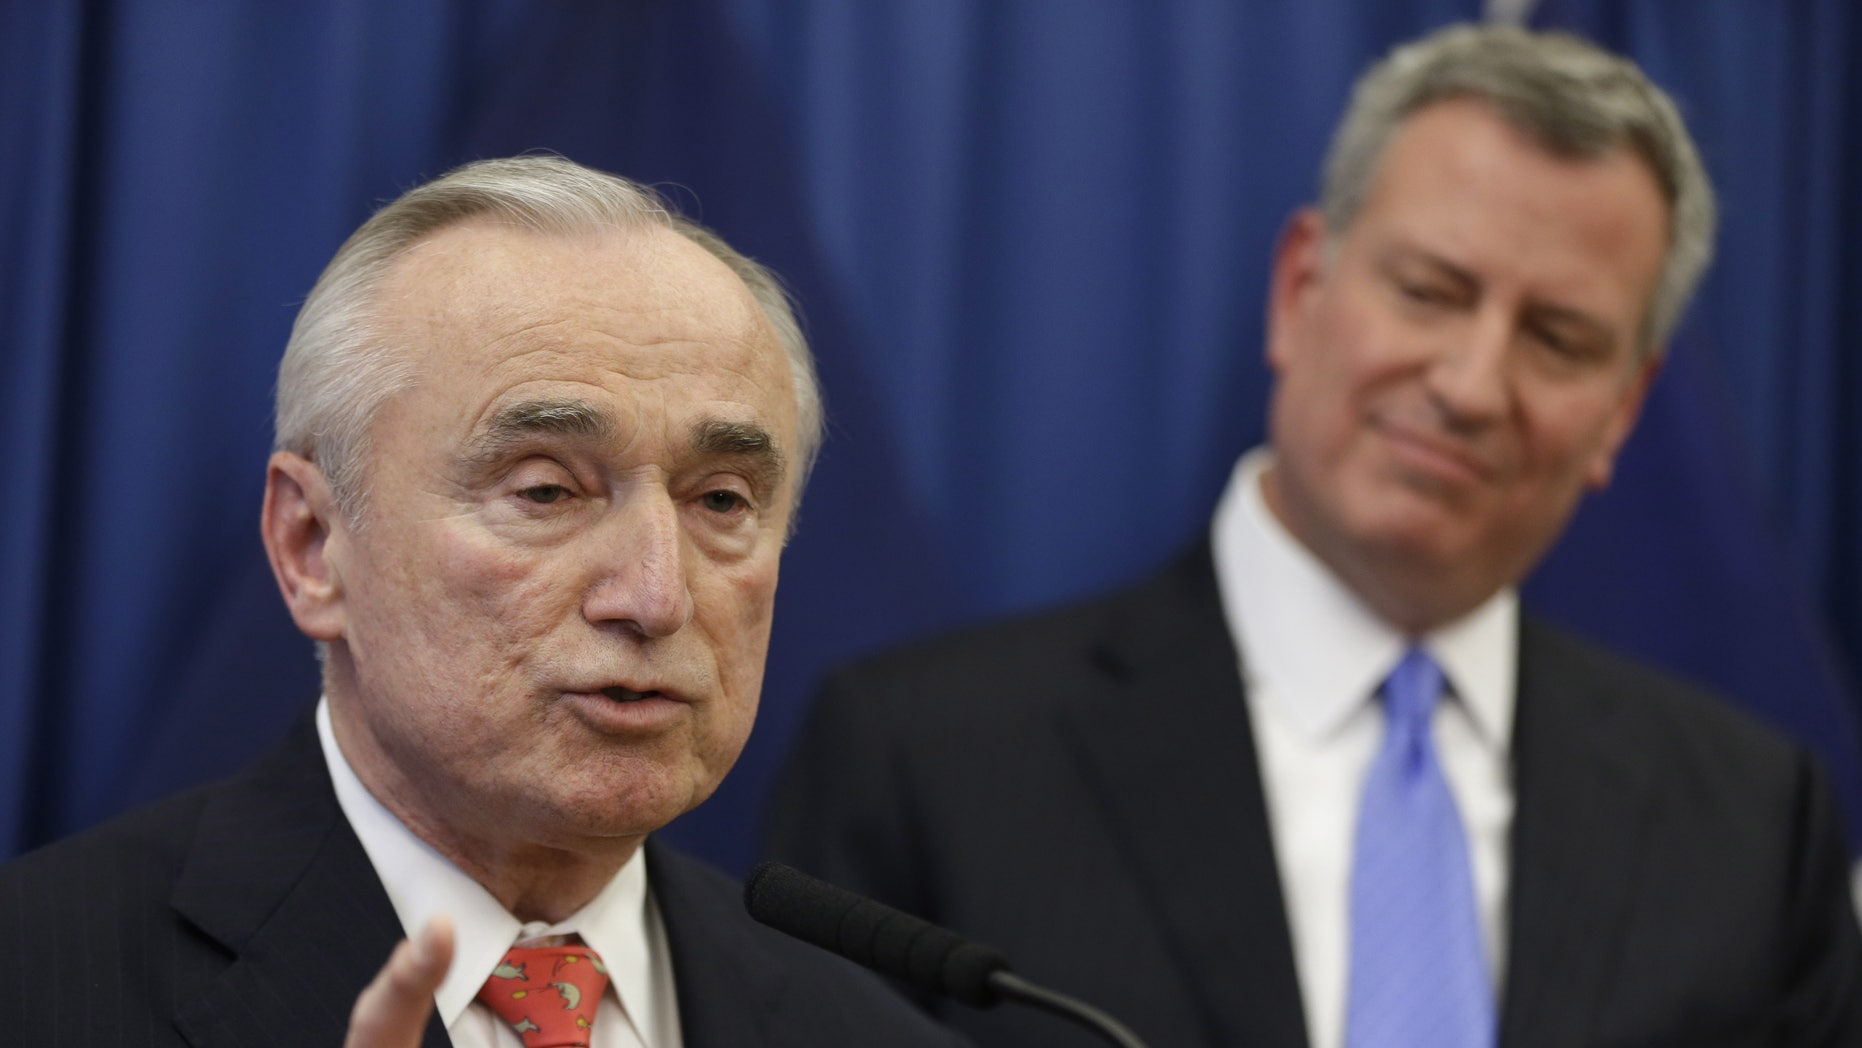 FILE -  In this Dec. 5, 2013 file photo, William Bratton, left, speaks while New York Mayor-elect Bill de Blasio looks on during a news conference in New York introducing Bratton as de Blasio's choice for New York City police commissioner. Although Bratton is a proponent of the police tactic known as stop and frisk, which de Blasio says was used too much during the Bloomberg years, both men have pledged to better explain the use of the tactic and de Blasio has vowed to drop the Bloomberg administrations objections to a pair of watchdogs - both an independent general and a federal monitor - who have been tasked with overseeing the NYPD. (AP Photo/Seth Wenig, File)